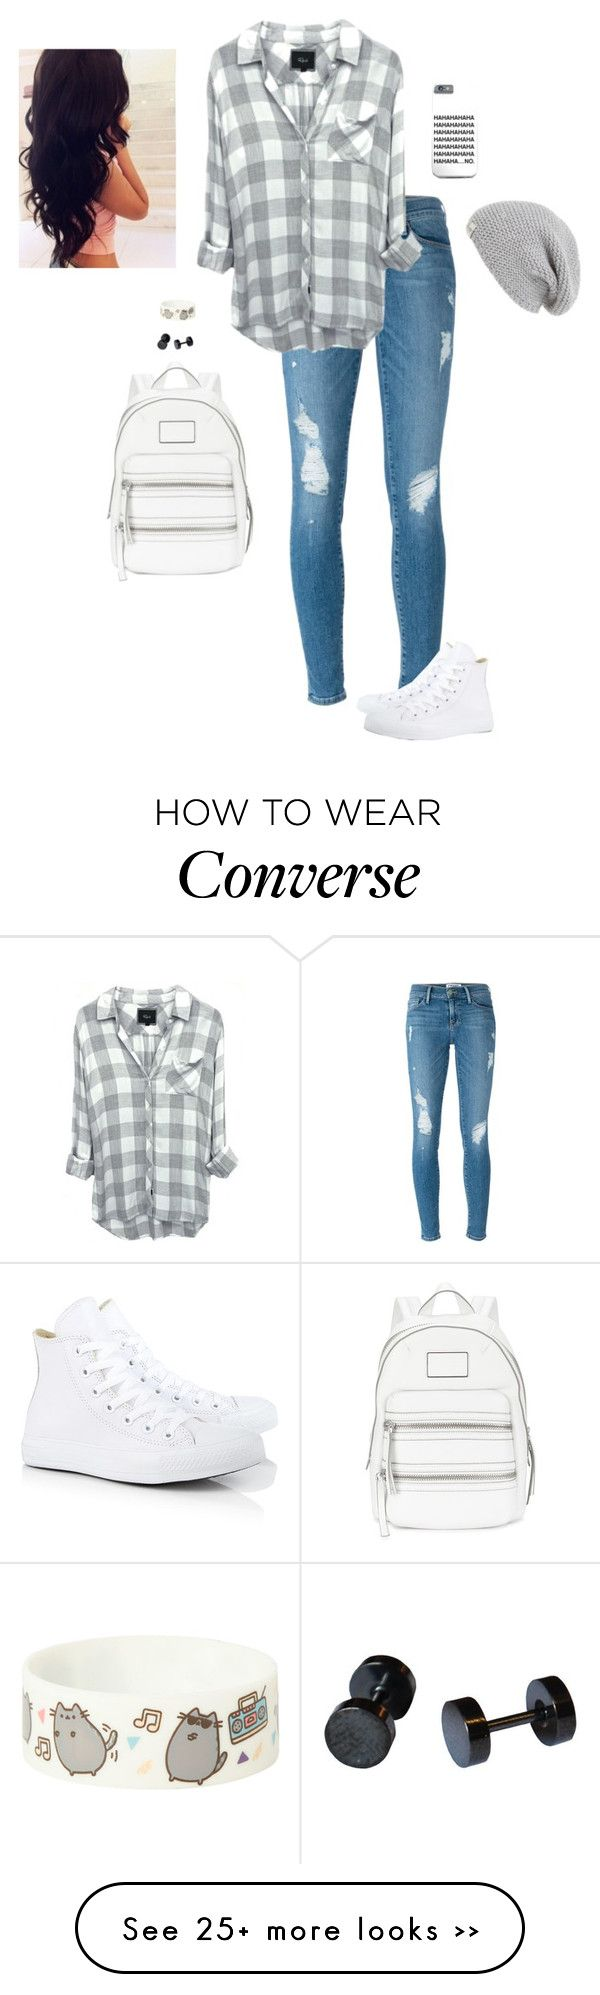 """#BTSWithHana"" by hanakdudley on Polyvore featuring Frame Denim, Marc by Marc Jacobs, UGG Australia, Converse and BTSWithHana"